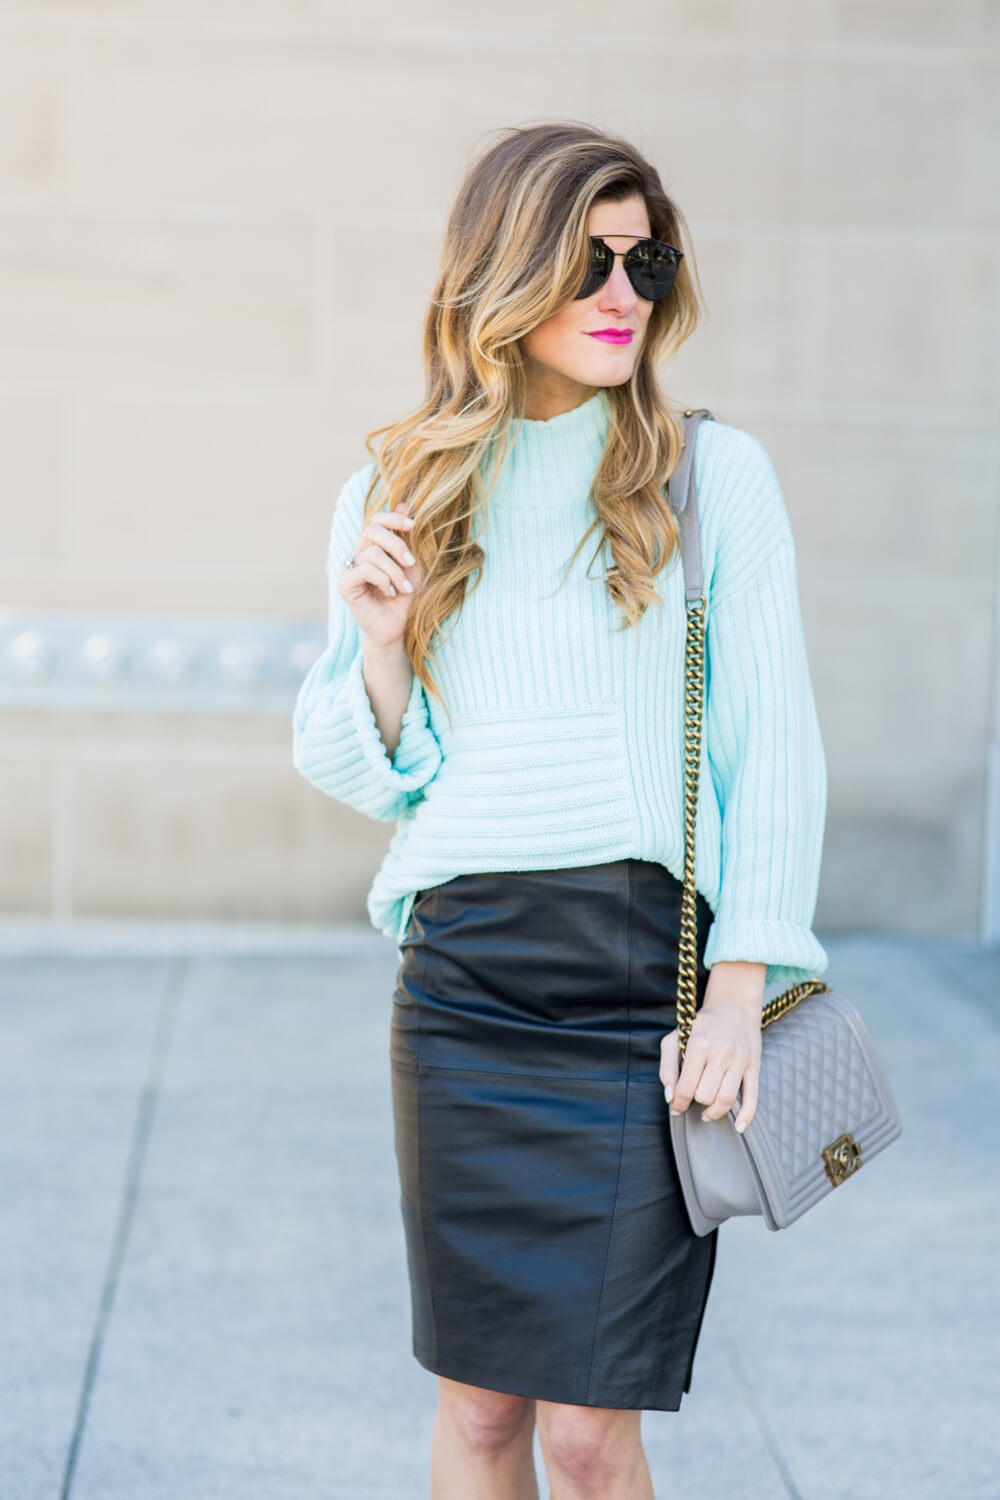 Black Leather Pencil Skirt Outfit // How To Style a Leather Pencil ...